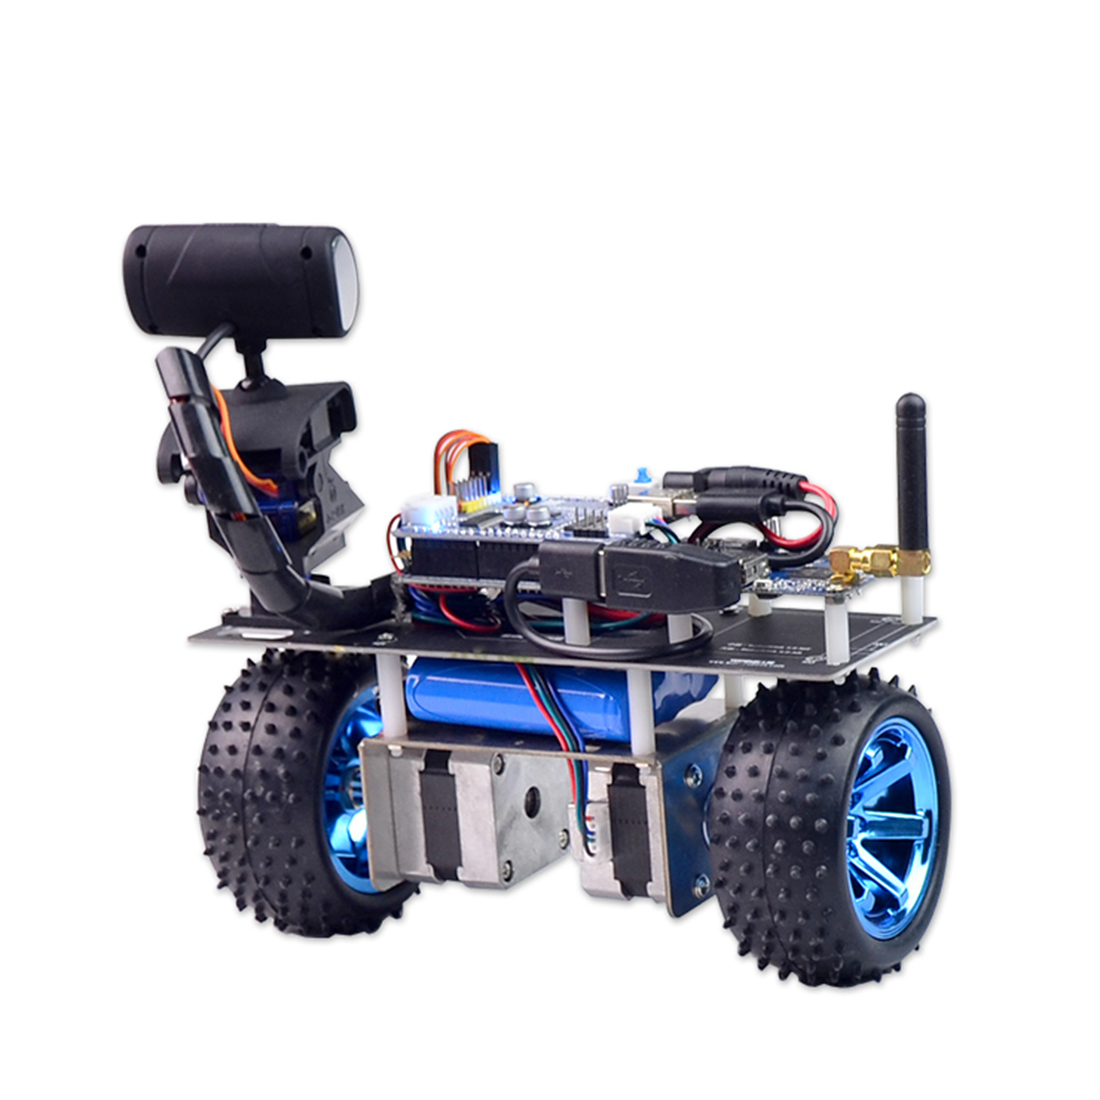 Programmable Intelligent Balance Car WiFi Video Robot Car Support IOS/Android APP PC Remote Control For STM32 Gift 2019